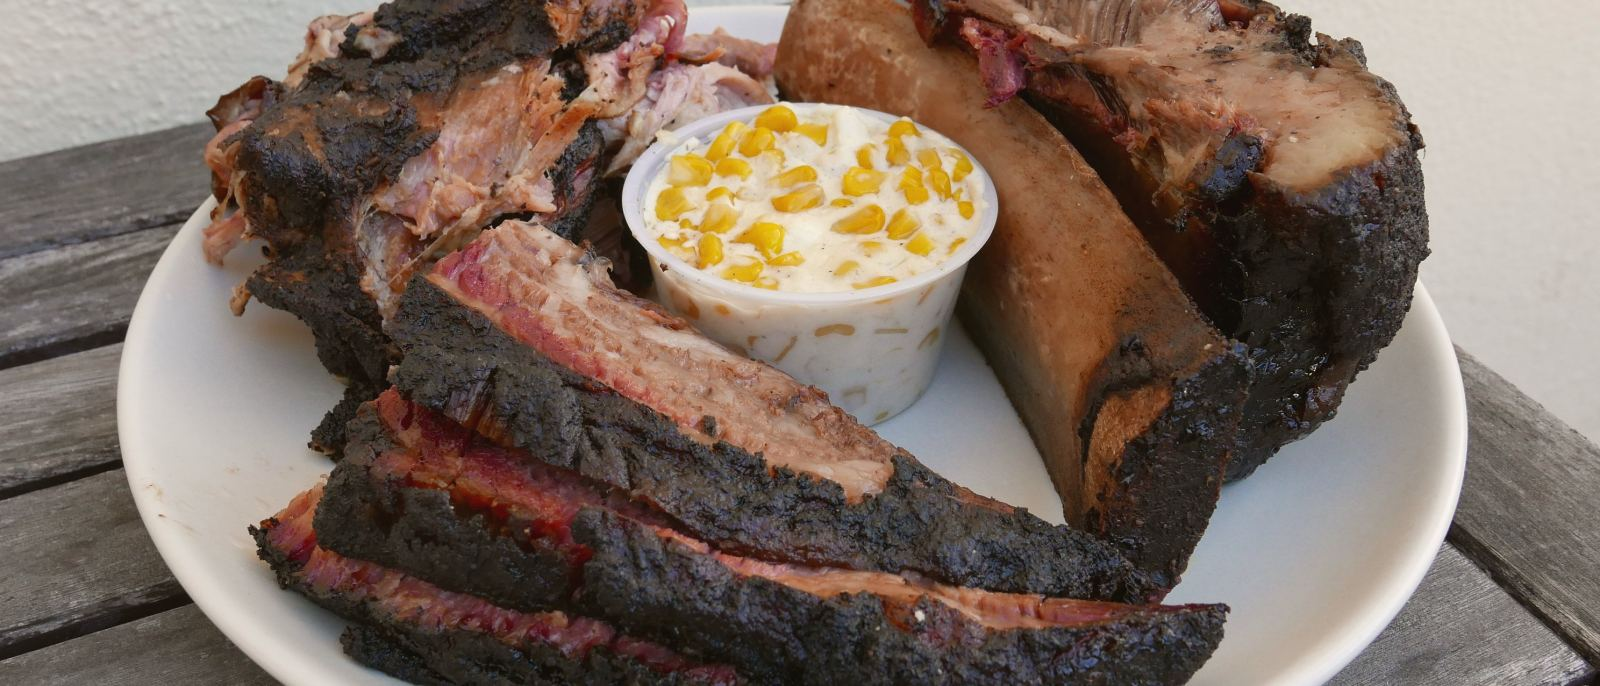 Brisket, beef ribs and pulled pork at Bartz Barbecue